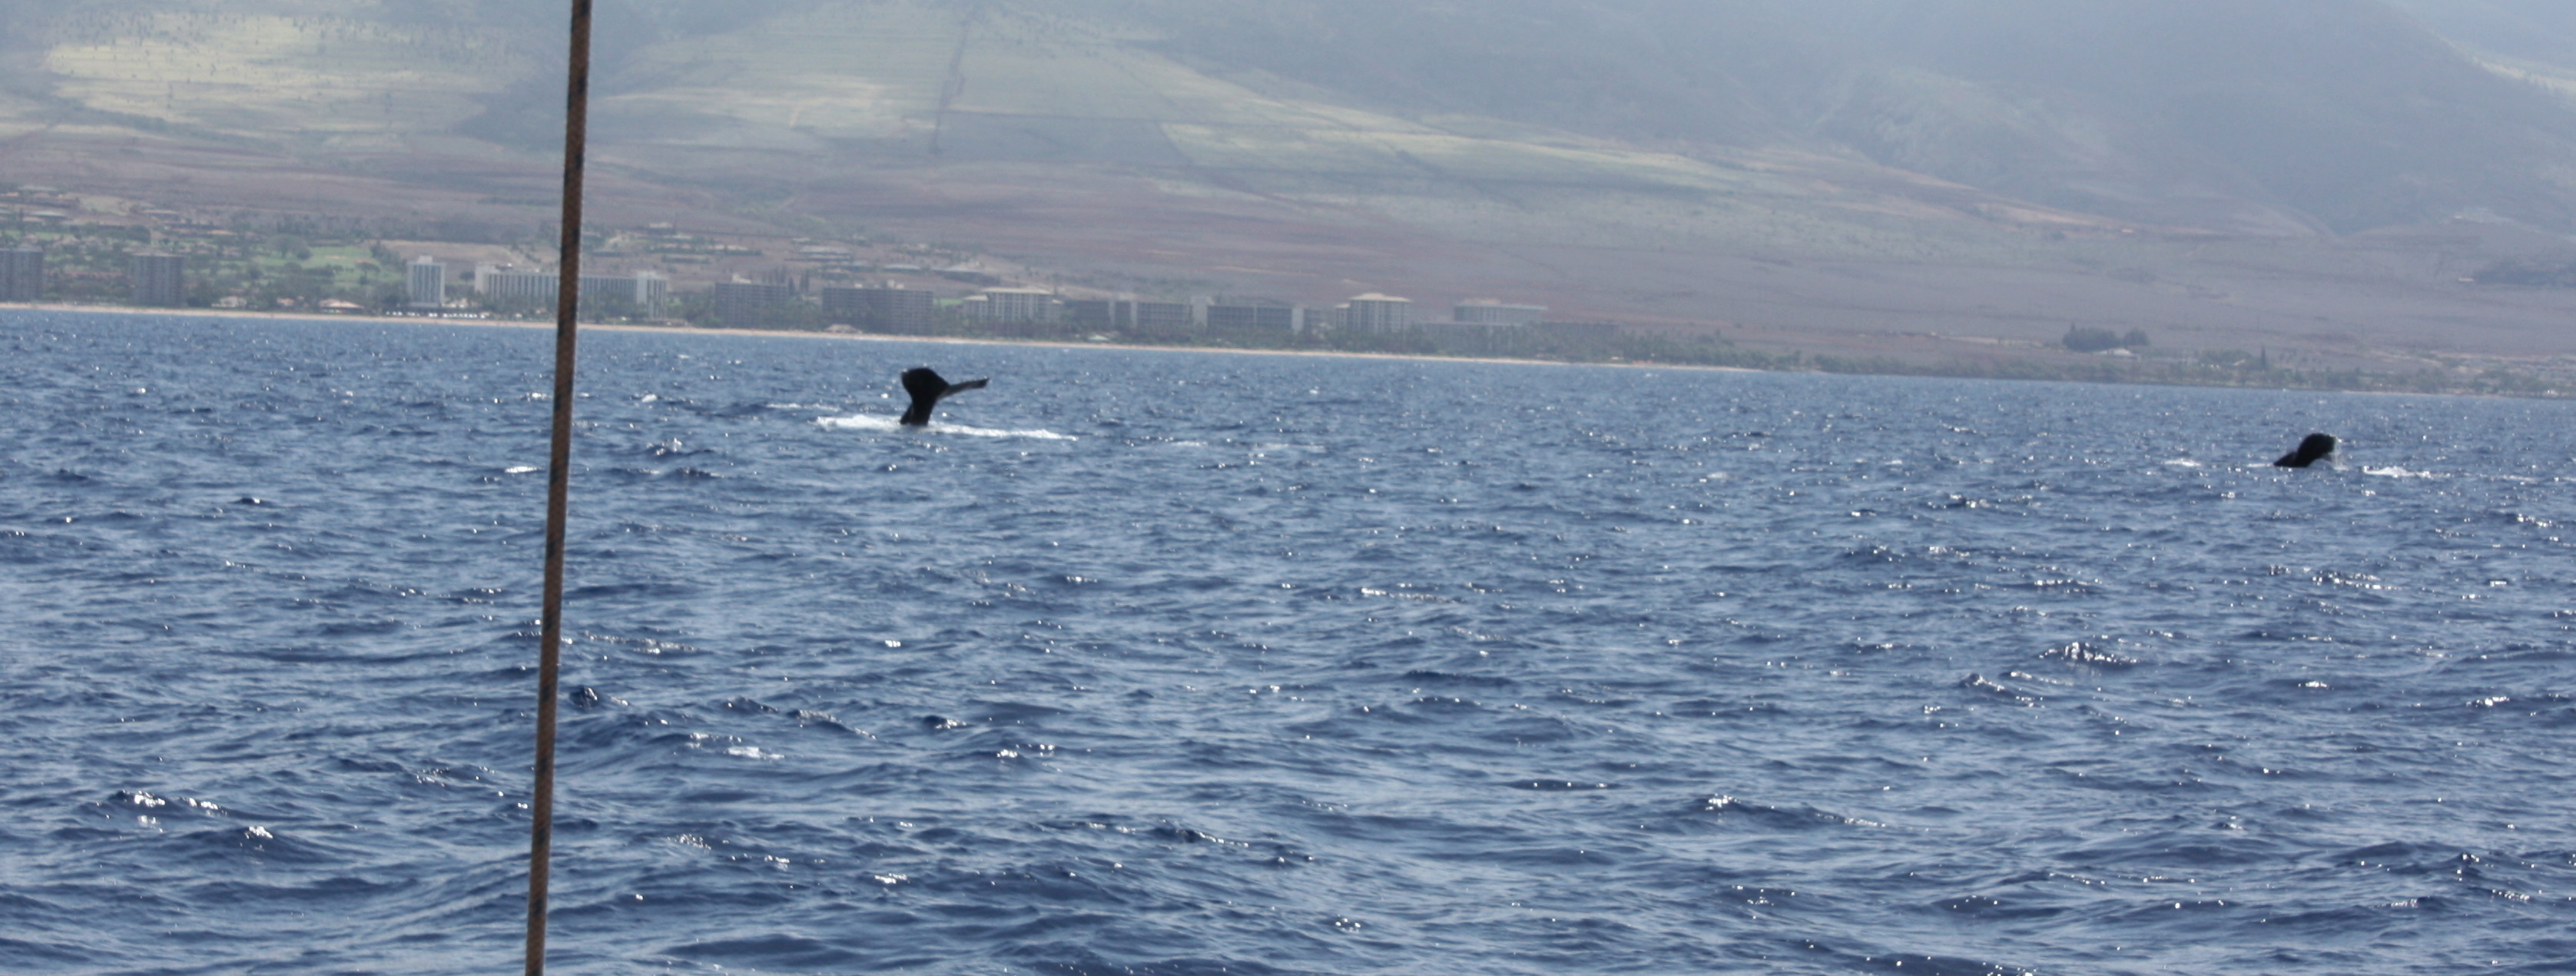 Maui, whales, whale watching, family activity, humpback whales, Trilogy whale watching tour